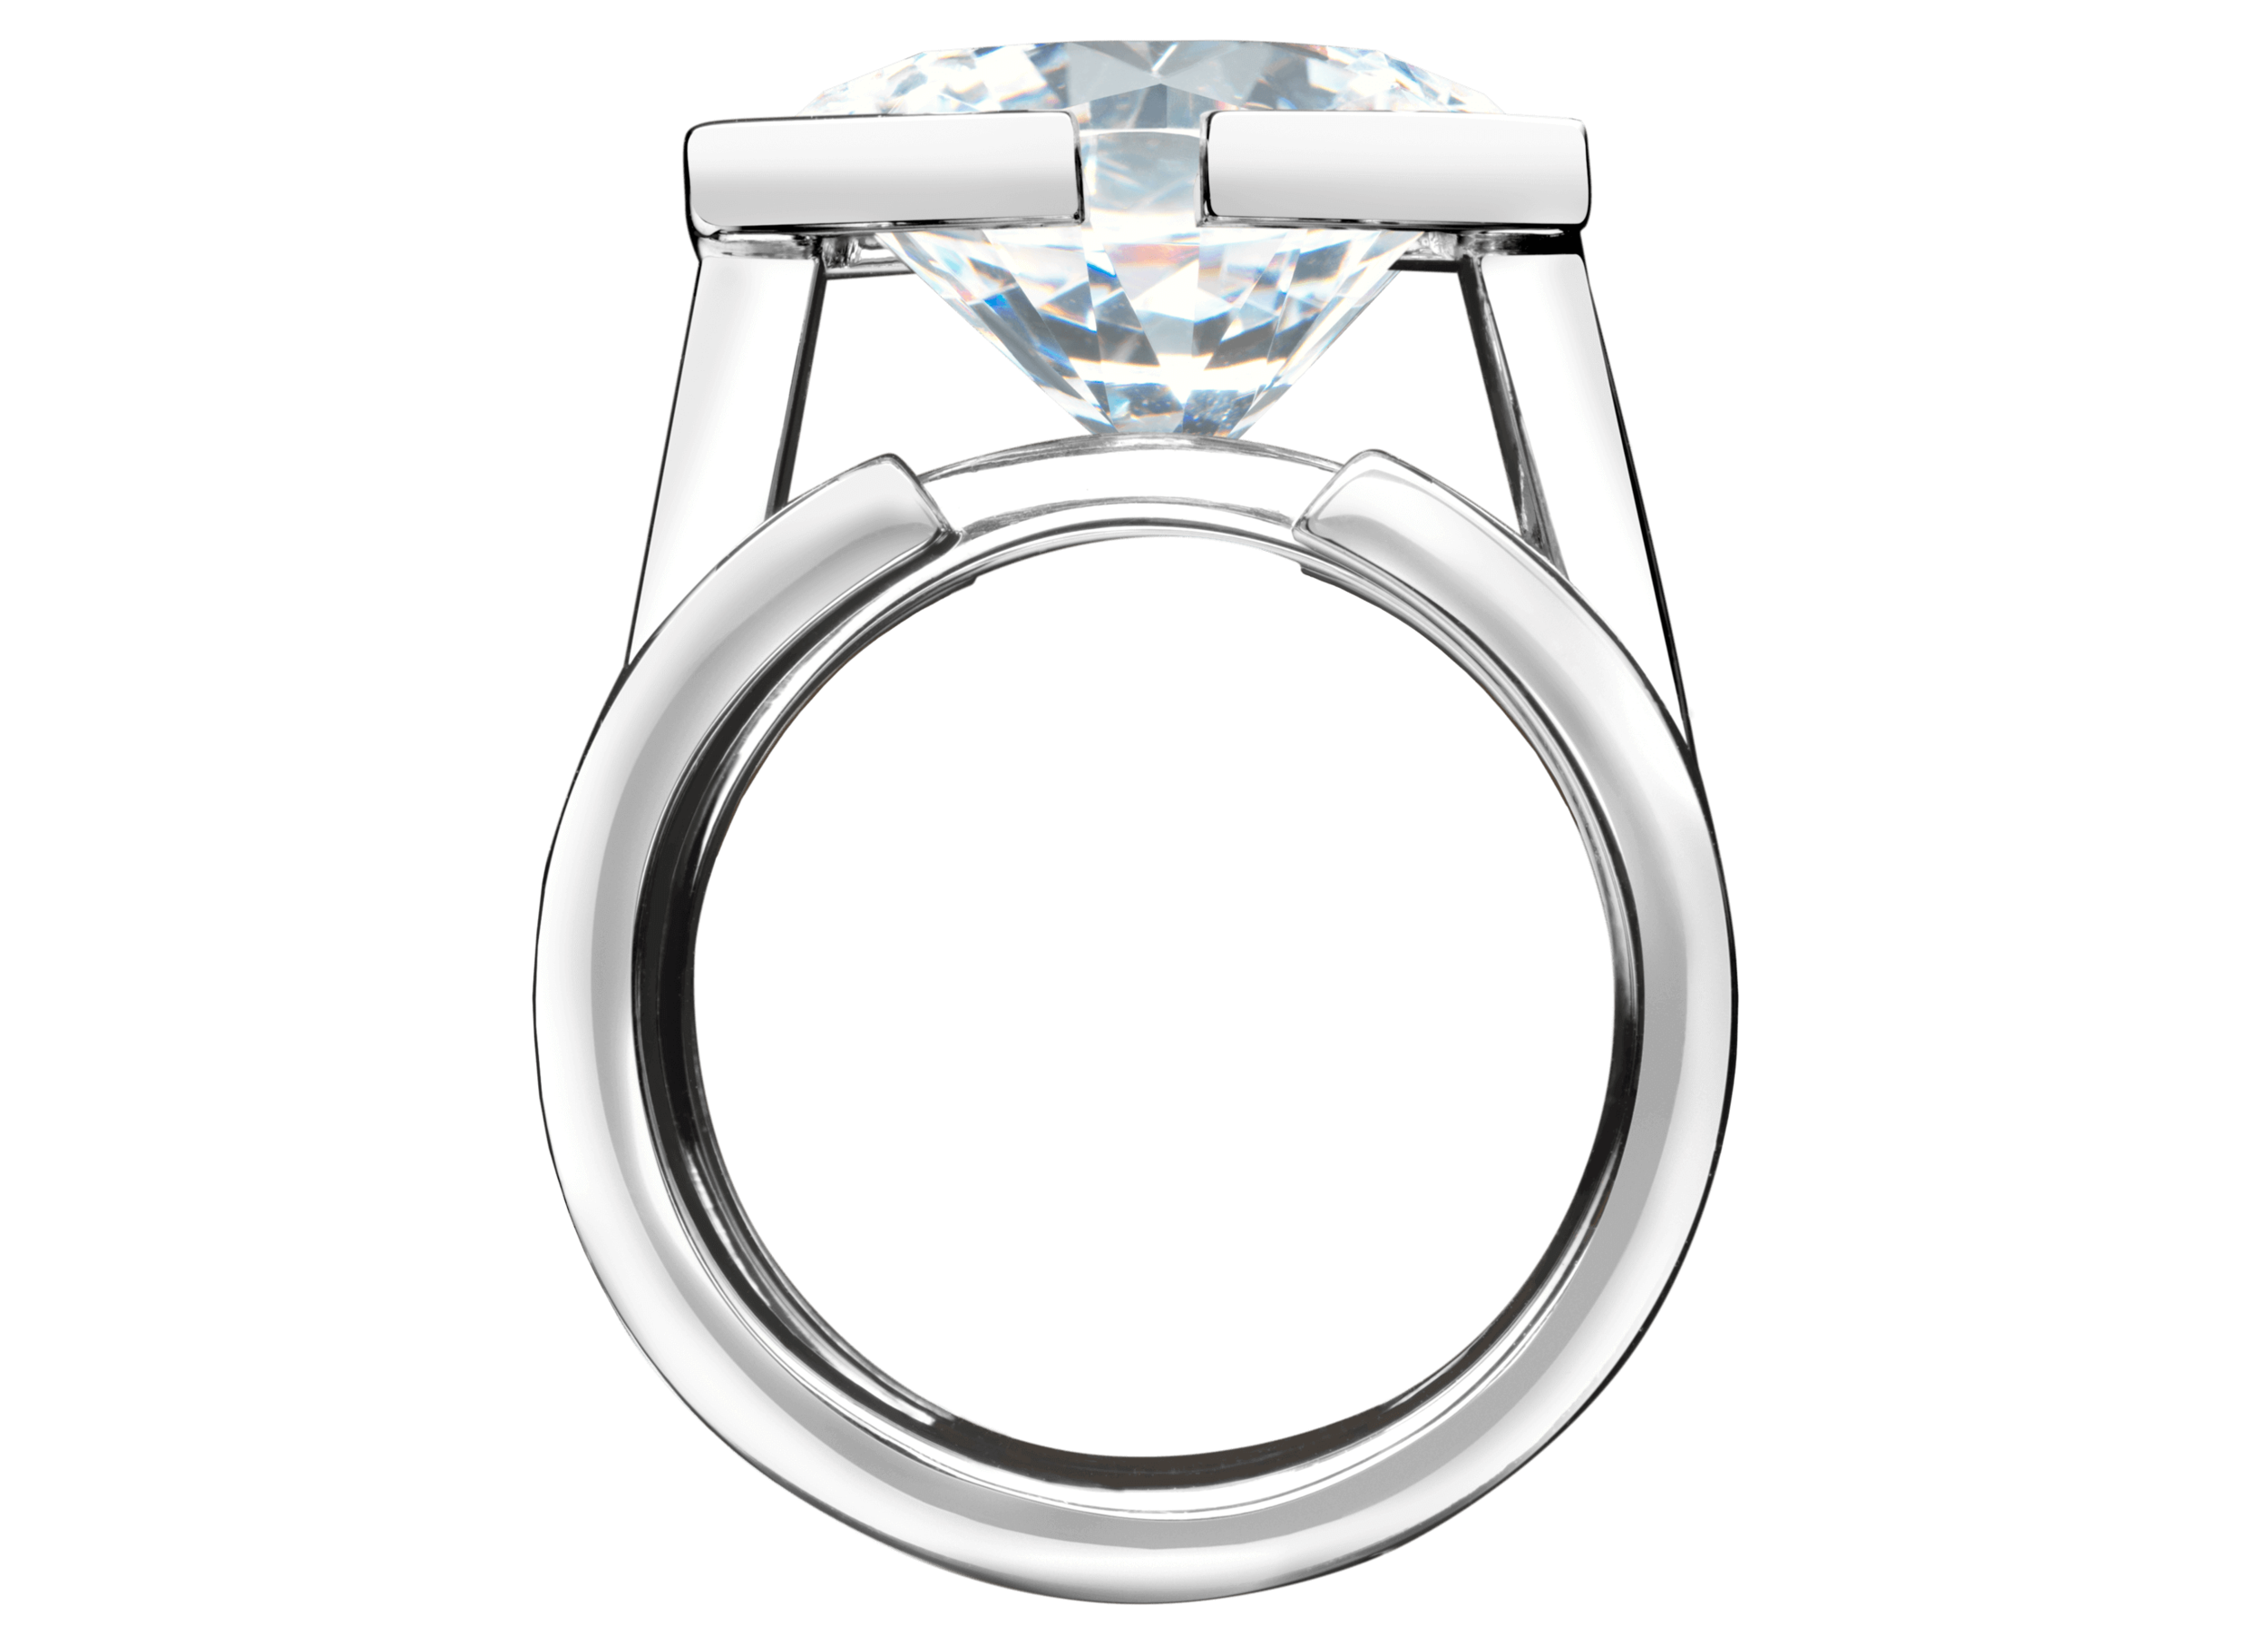 Bague Saint-Louis or blanc et diamant 5,48 carats face.png